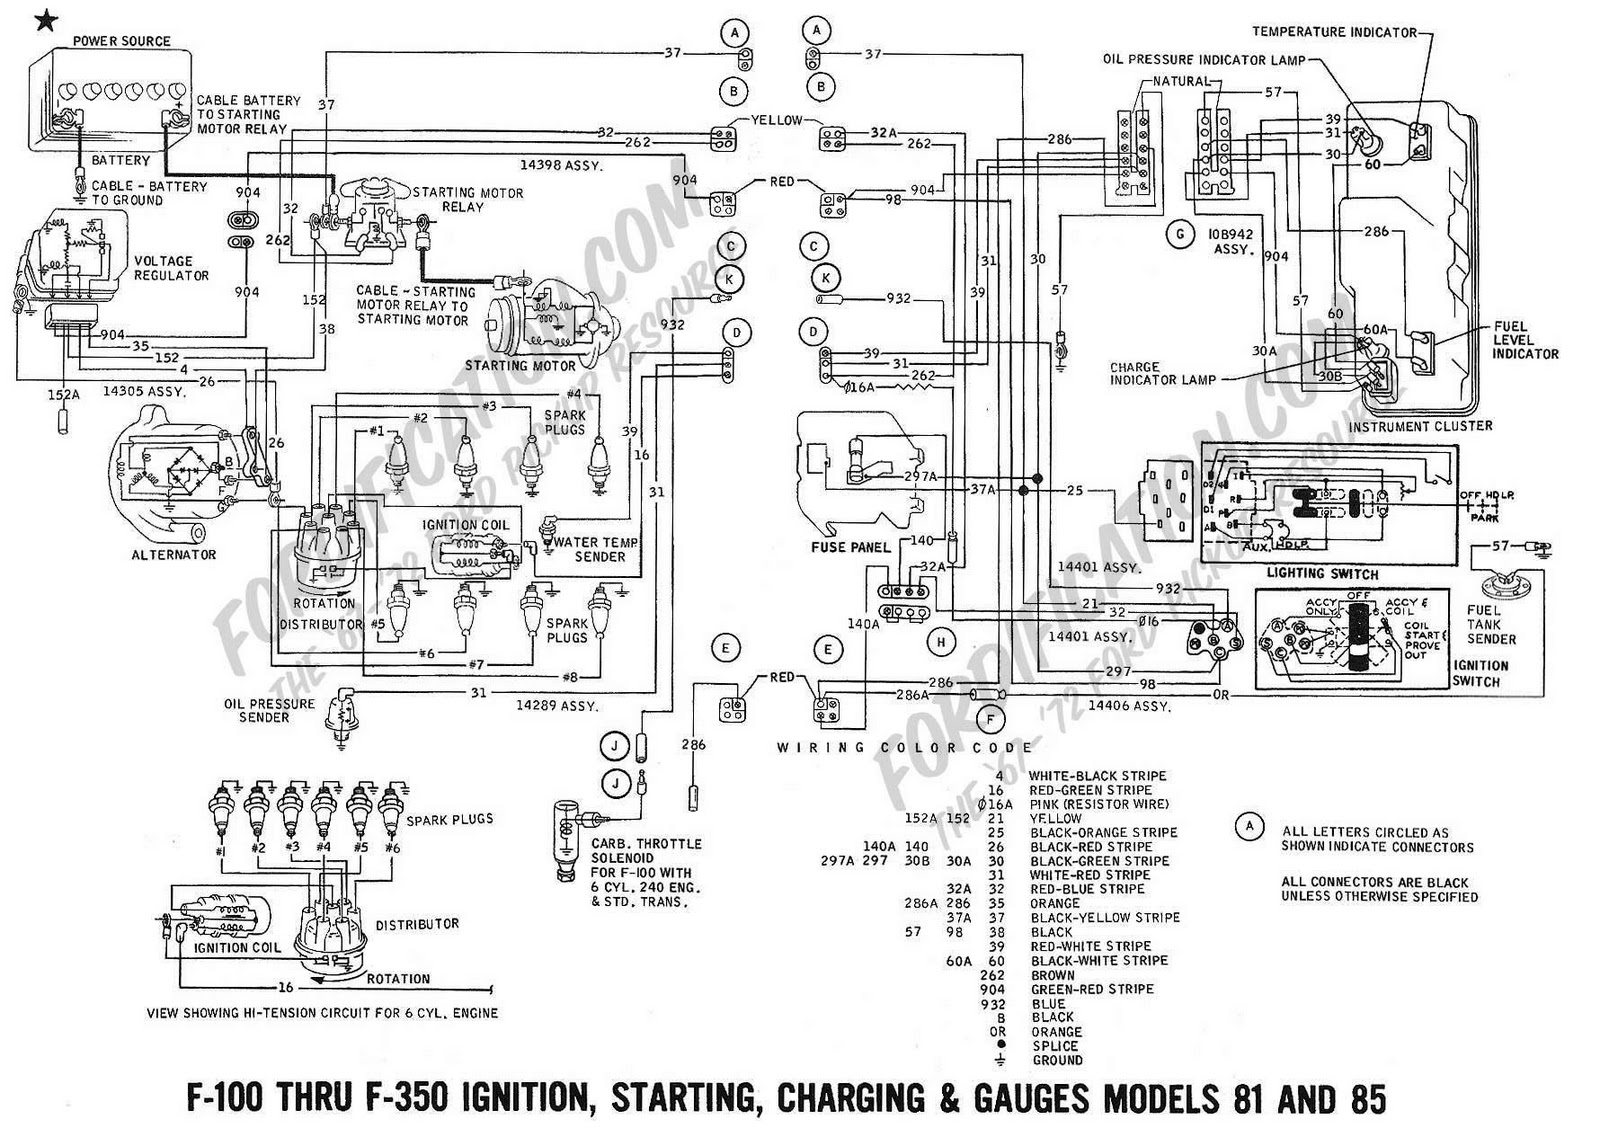 hight resolution of 1989 thunderbird wiper wiring download wiring diagrams u2022 2000 ezgo golf cart wiring 1989 thunderbird